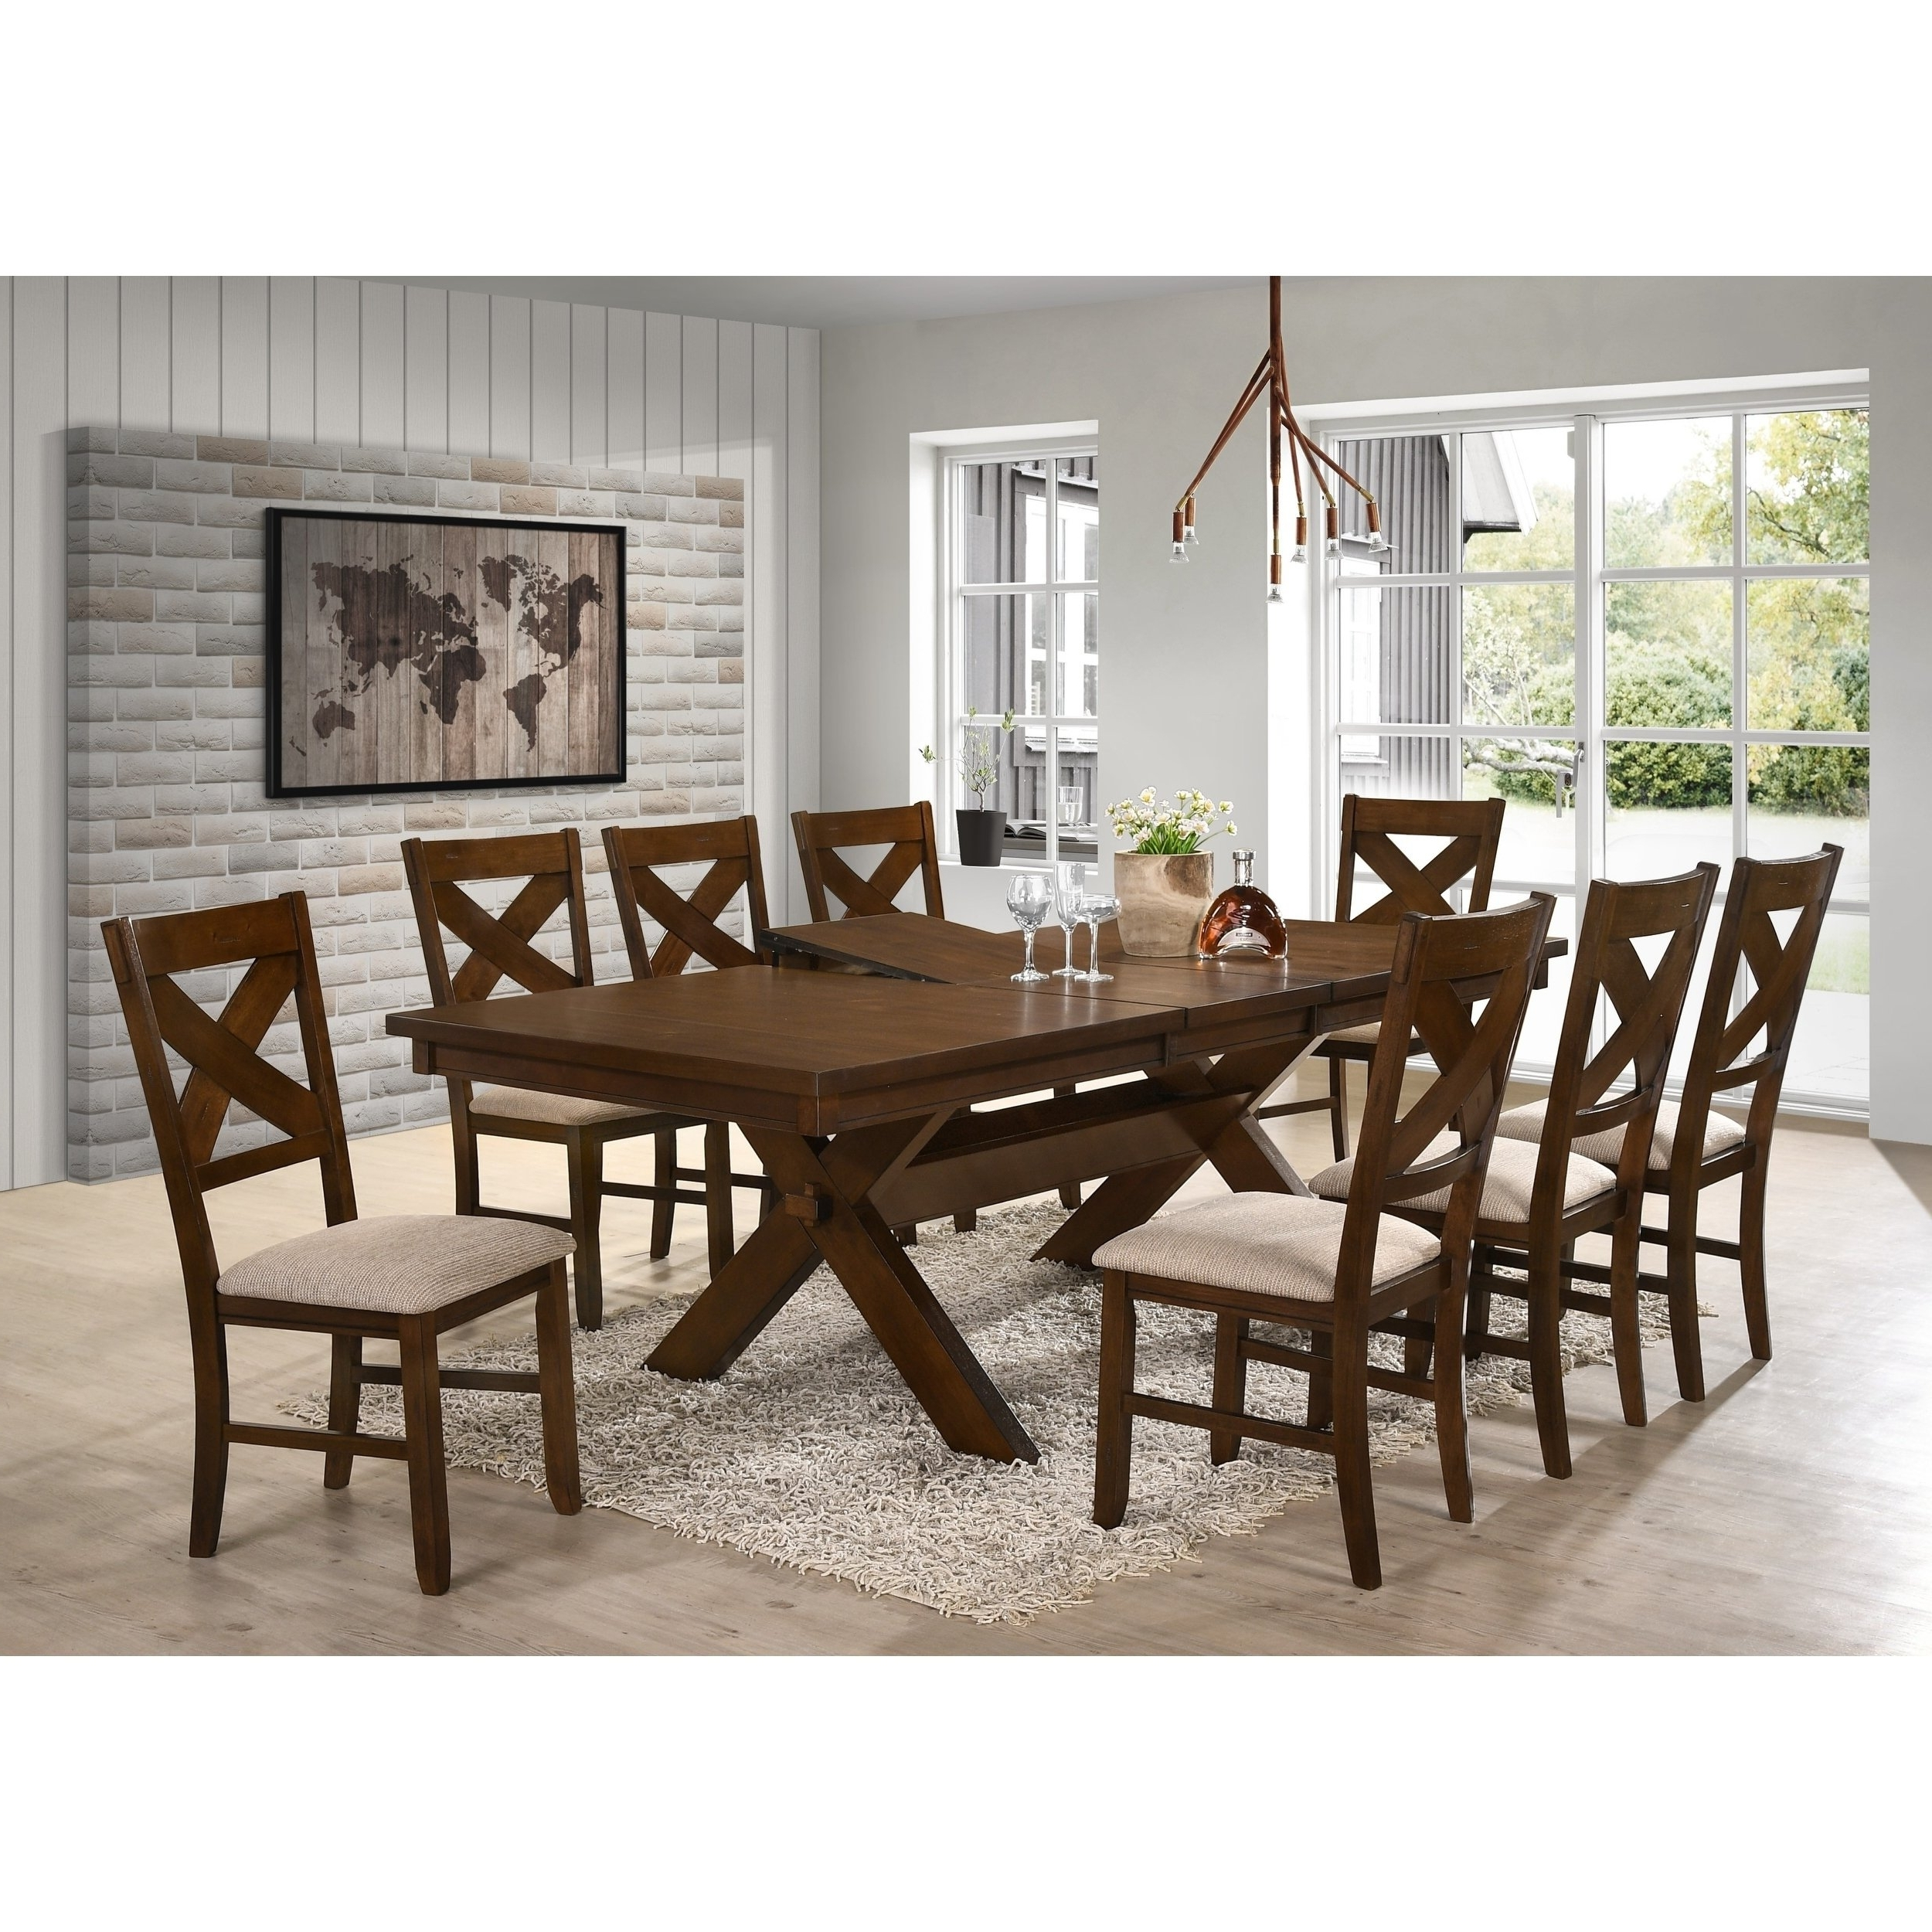 Dining Tables And 8 Chairs Regarding Popular Shop 9 Piece Solid Wood Dining Set With Table And 8 Chairs – Free (View 10 of 25)